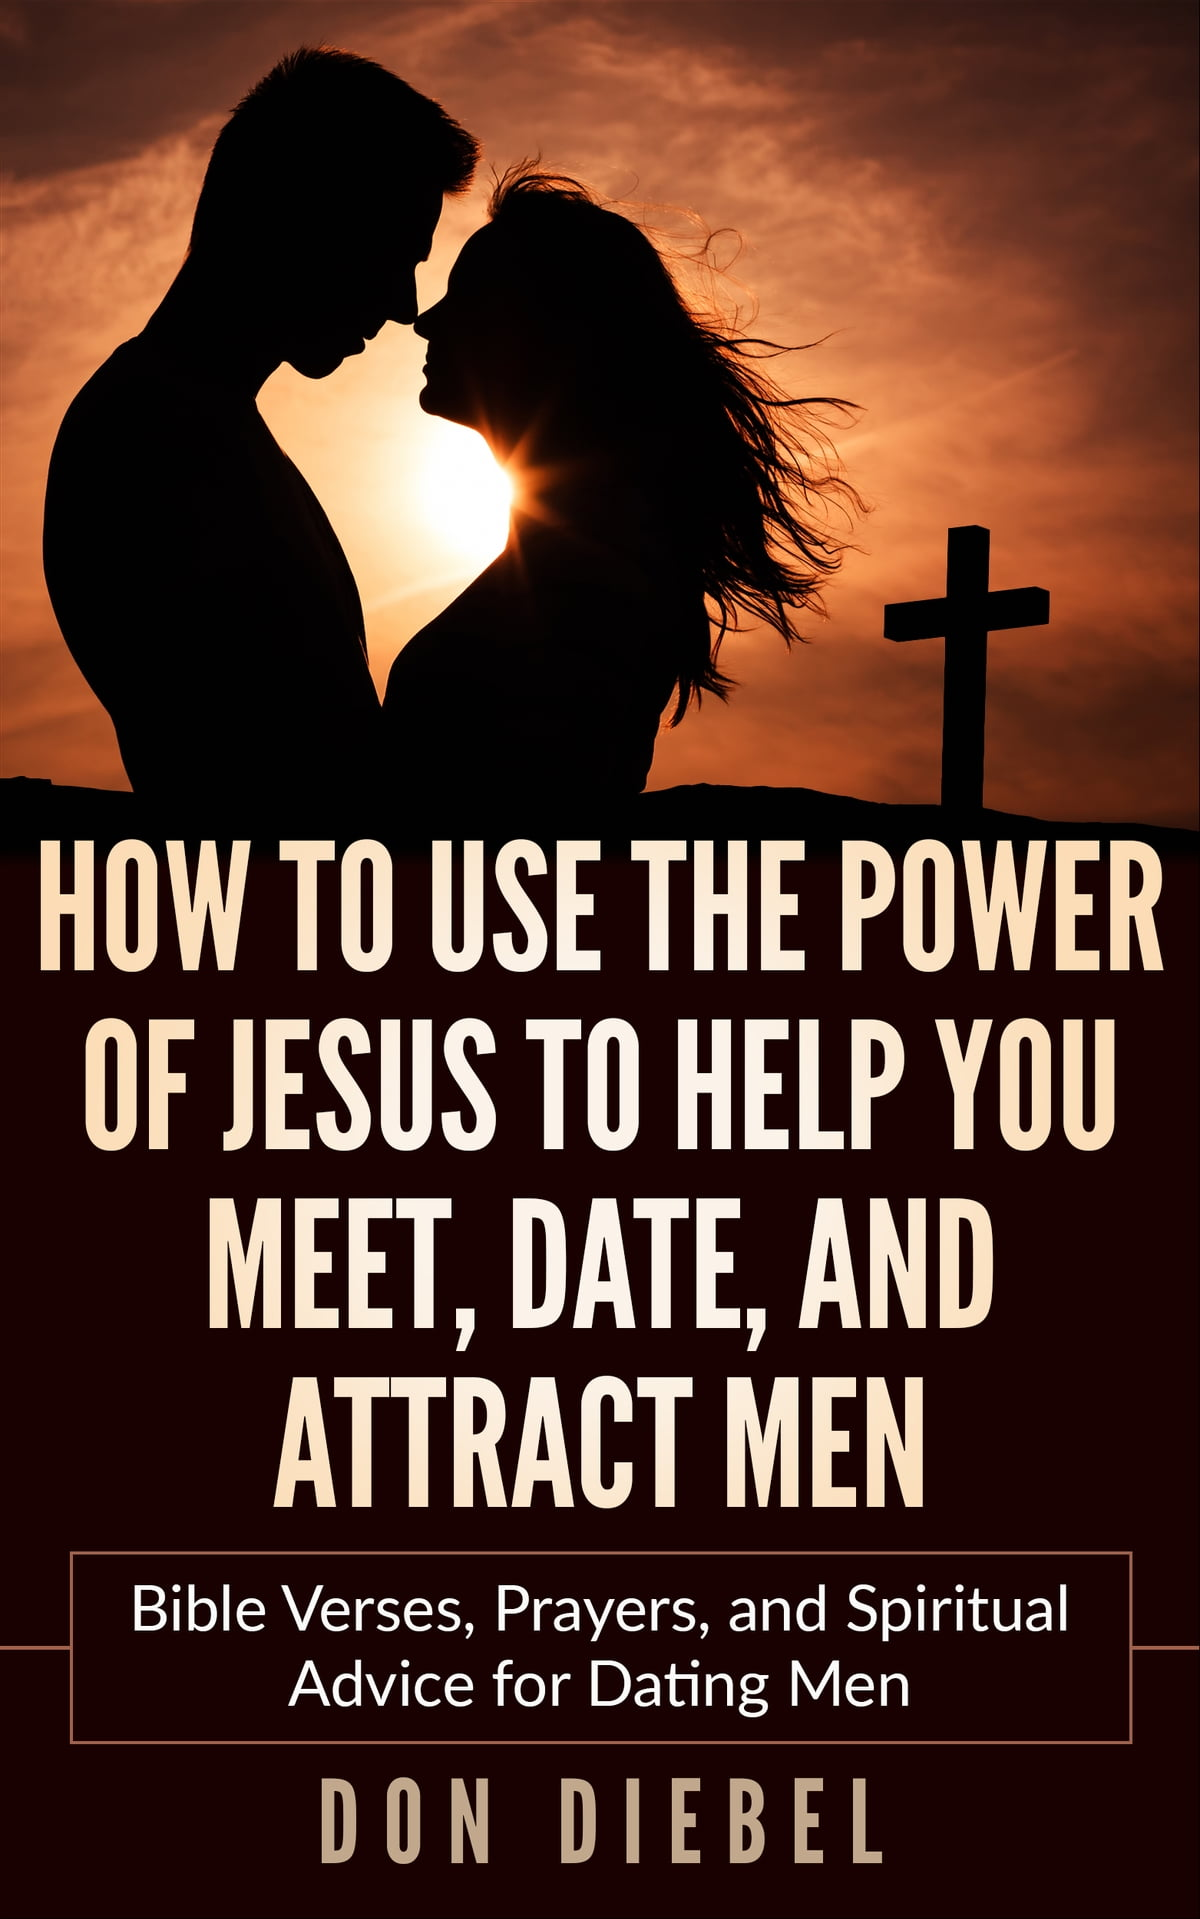 How to approach dating as a christian